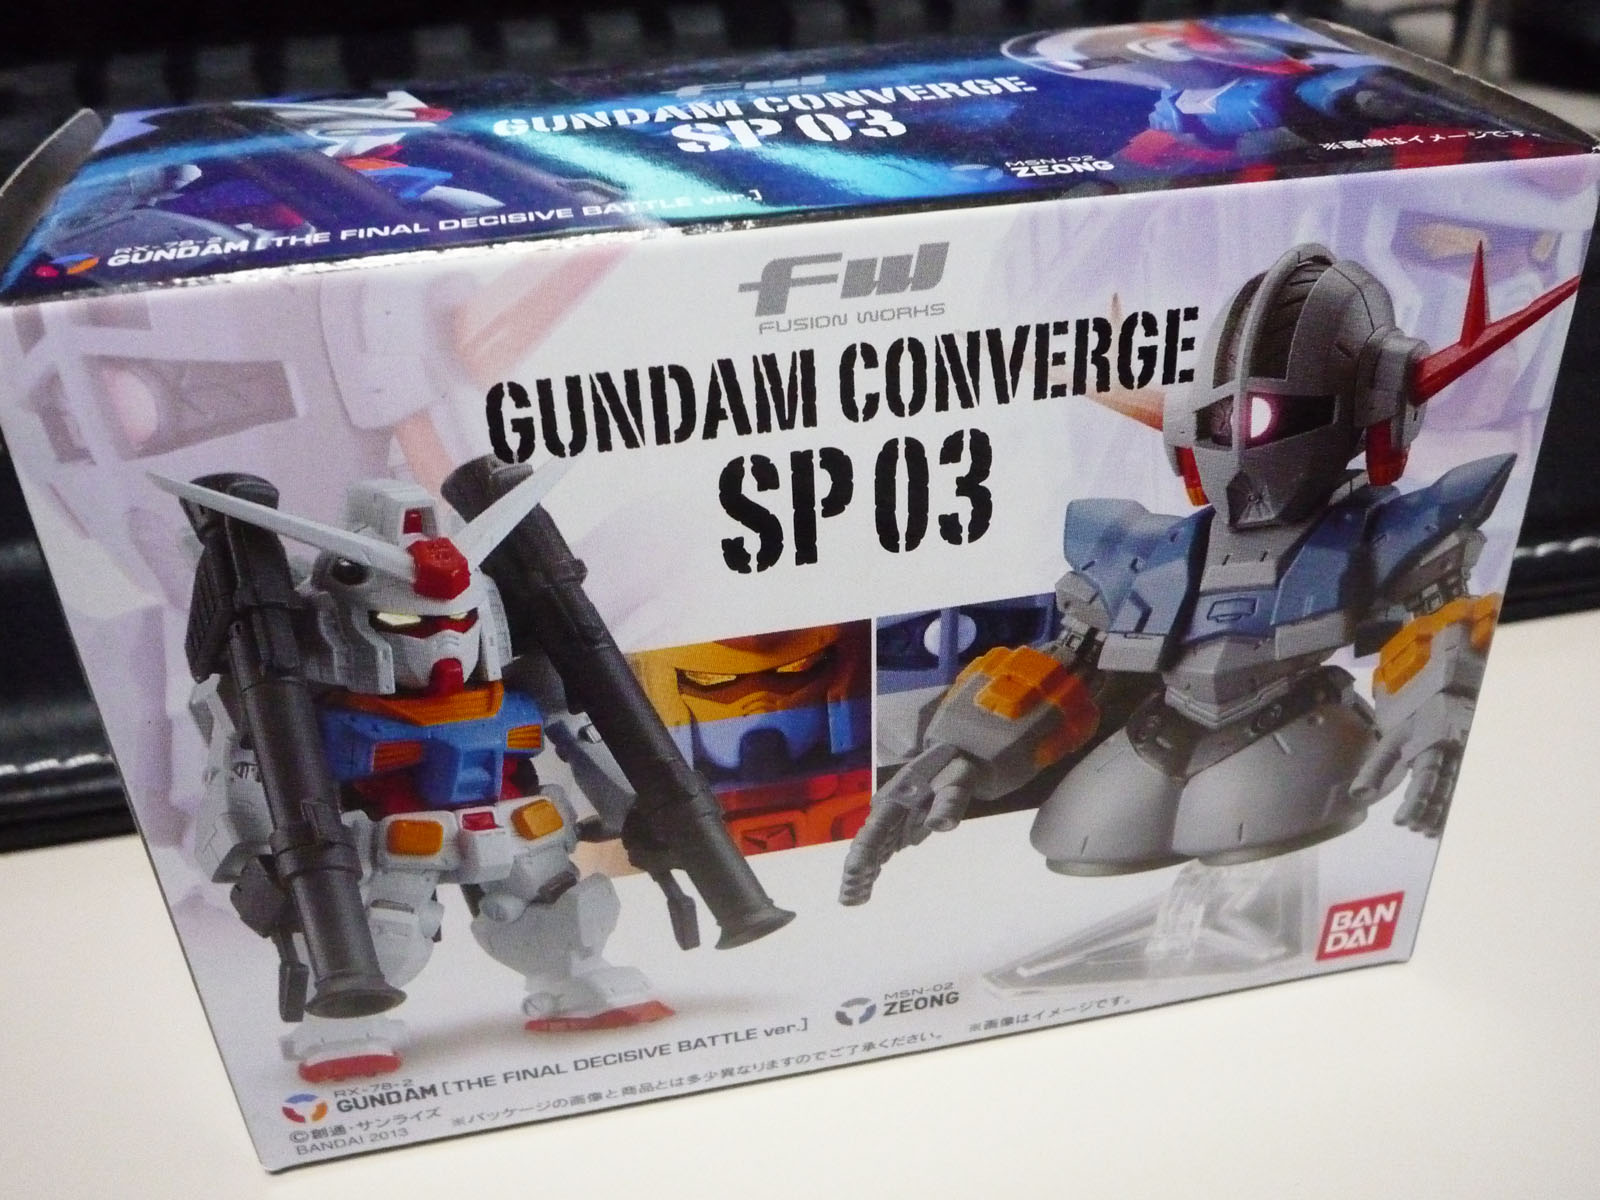 GUNDAM CONVERGE FW SP03 RX-78-2 GUNDAM[THE FINALDECISIVE BATTLE ver.]